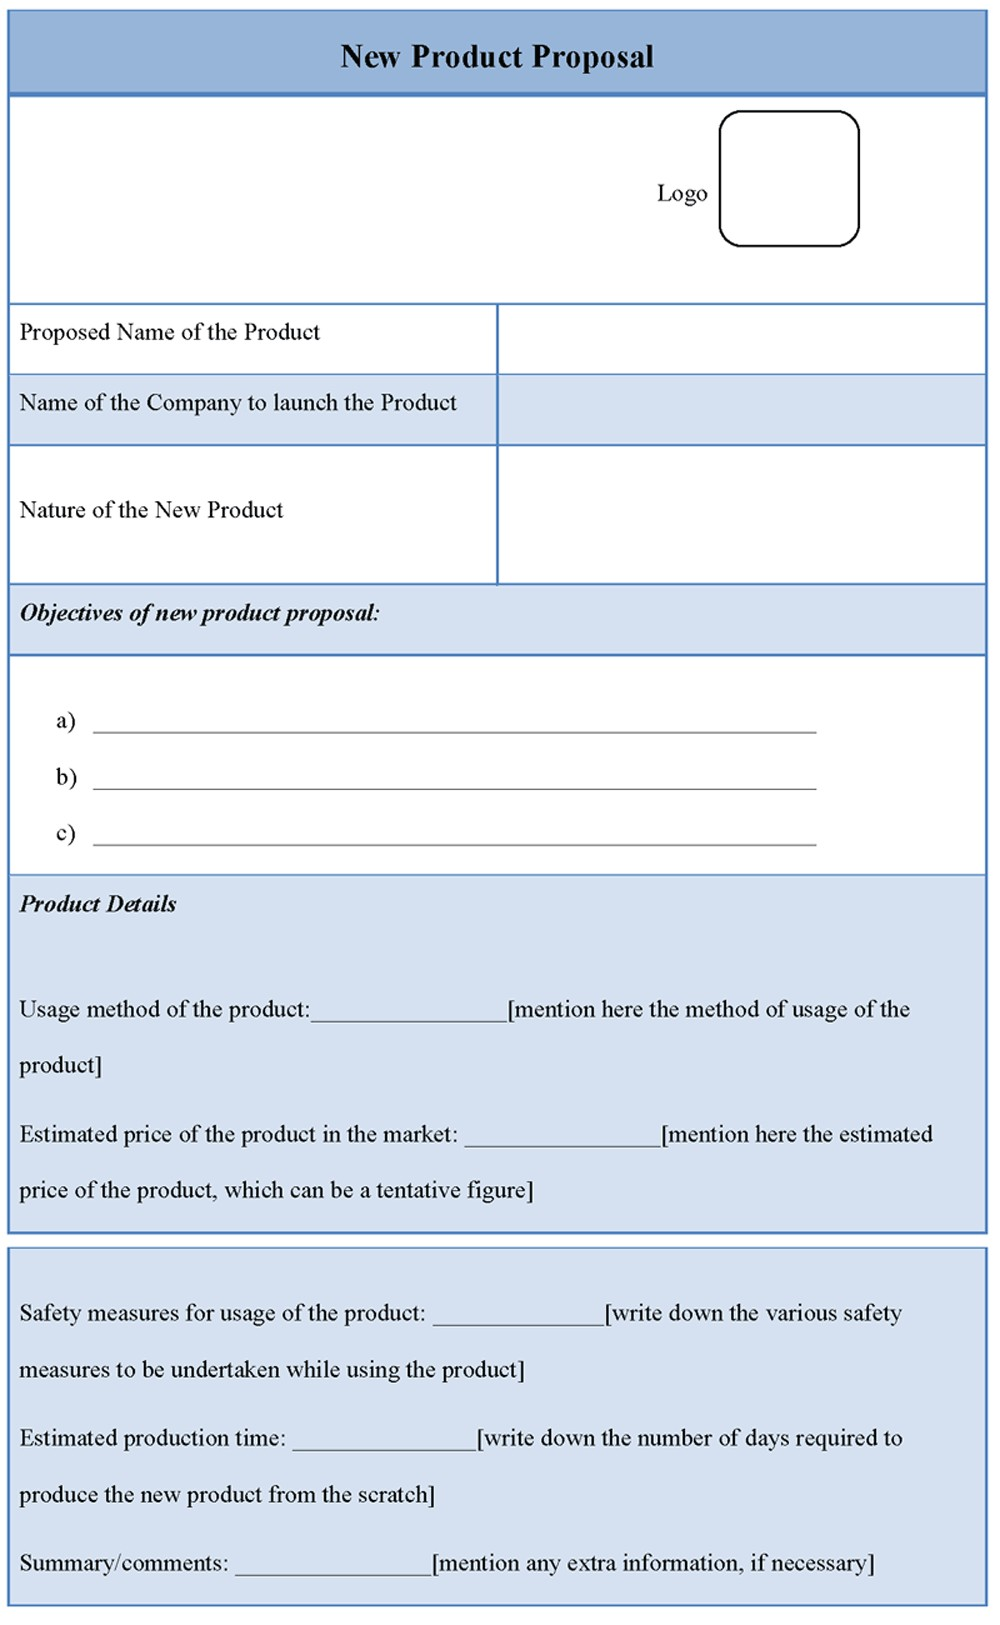 Fundraising Consultant Proposal Template 10 Best Images Of Fundraising Consultant Proposal Template